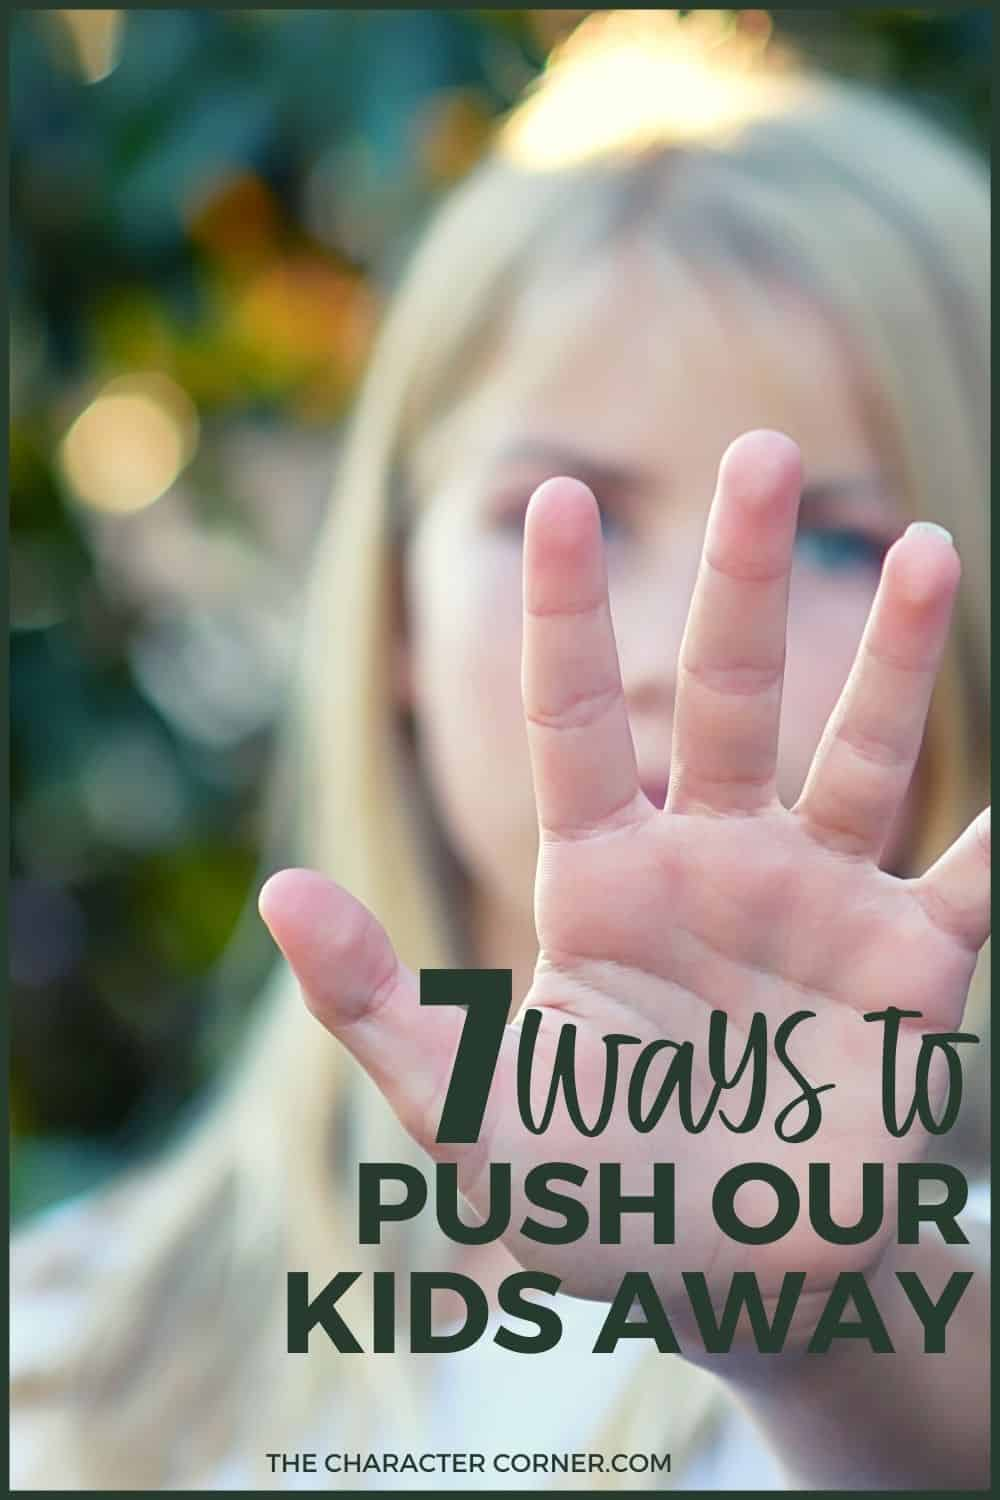 Daughter pulling away with hand up text on image reads 7 Ways We Push Our Kids Away